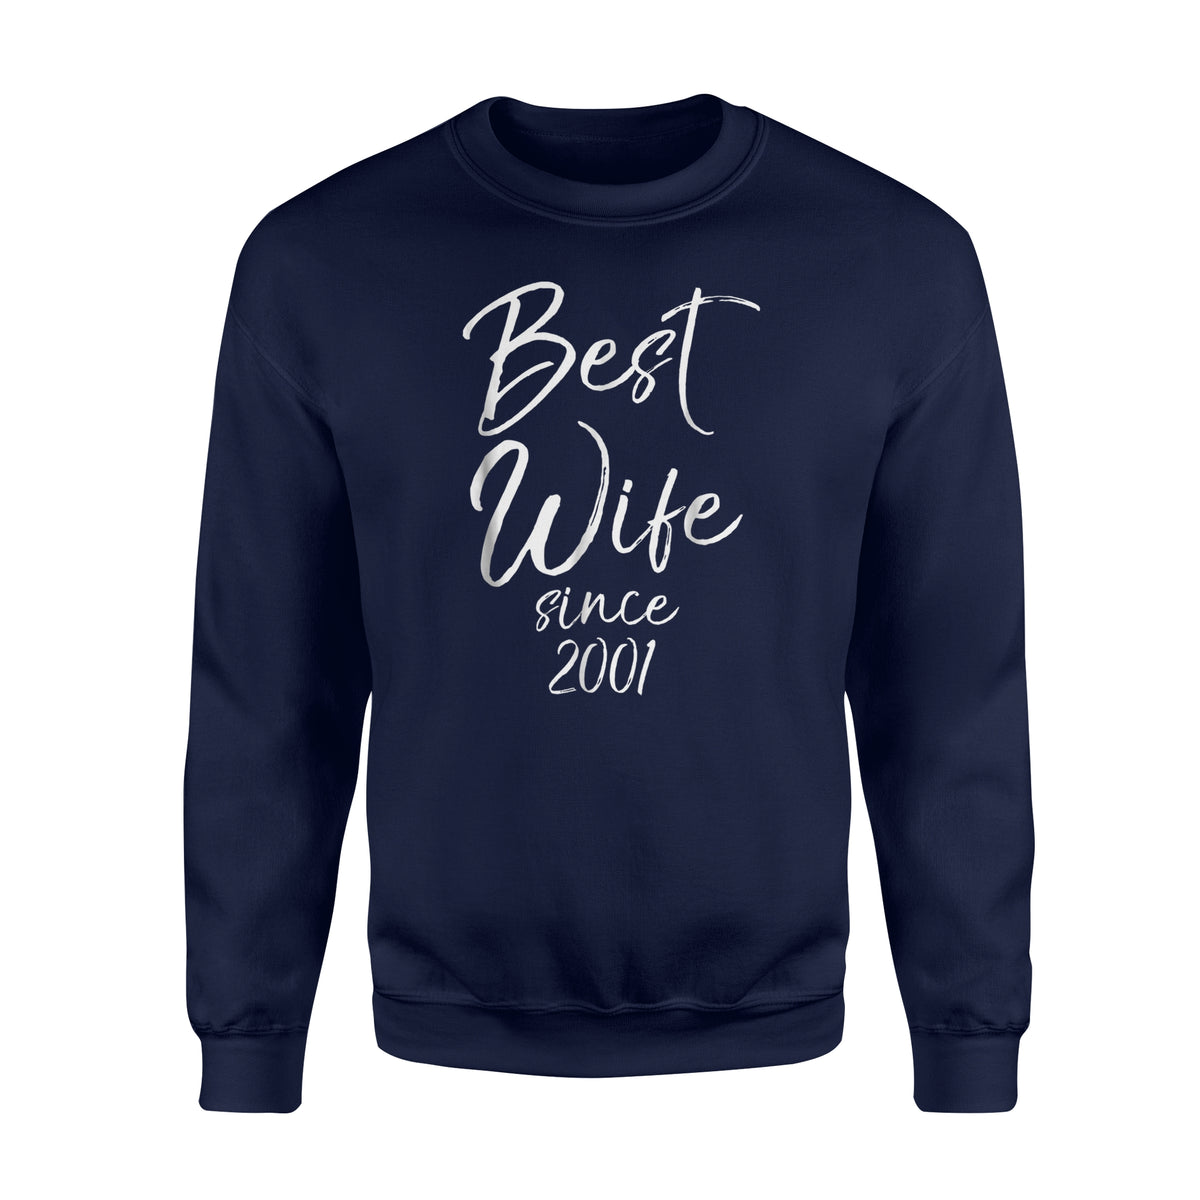 17th Anniversary Gift For Wife: Best Wife Since 2001 Cute 17th Anniversary Gift Sweatshirt